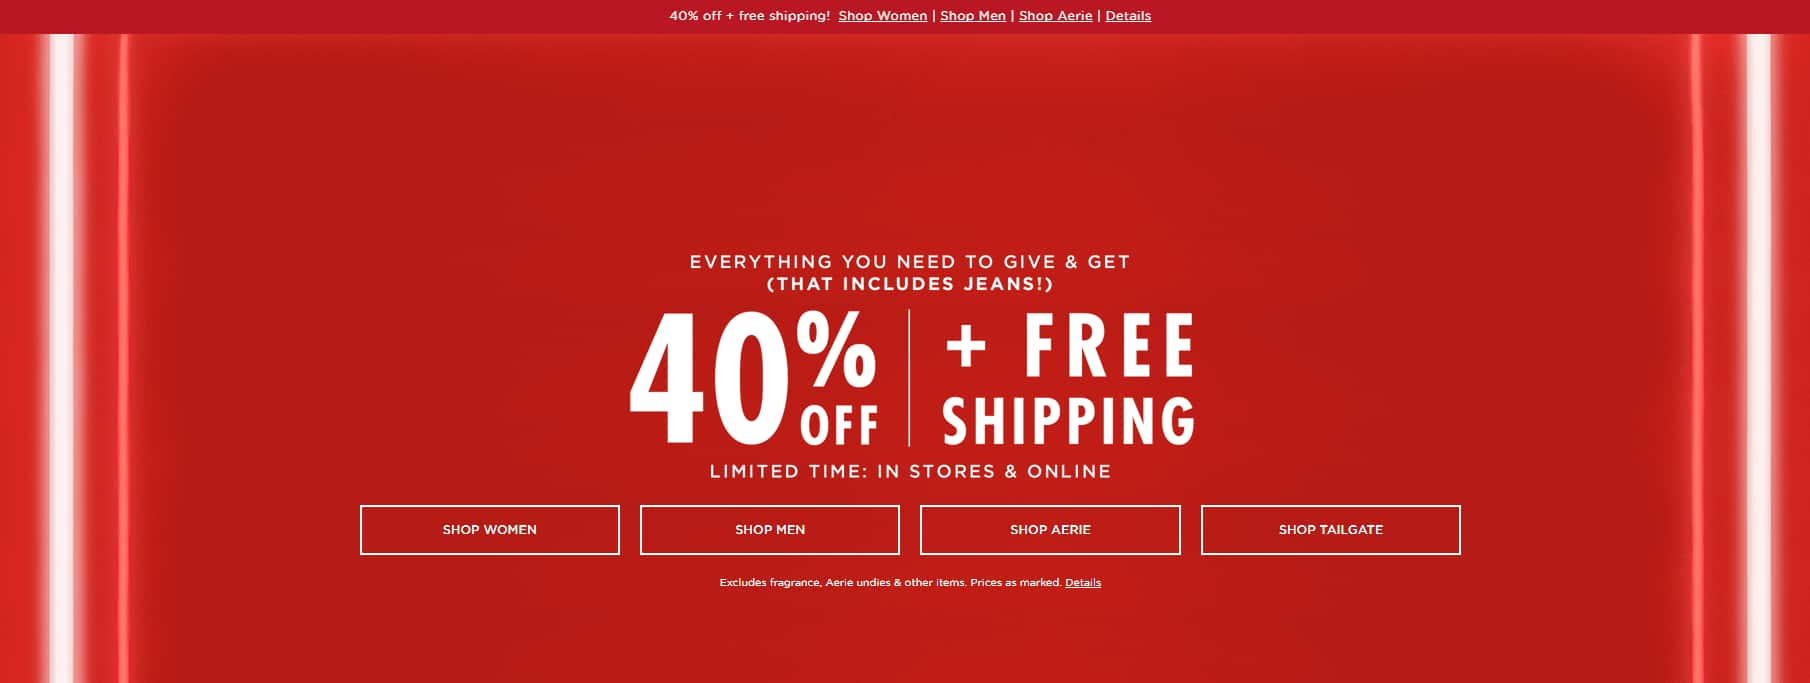 40% OFF at American Eagle (includes jeans) prices from $9.57 + FS